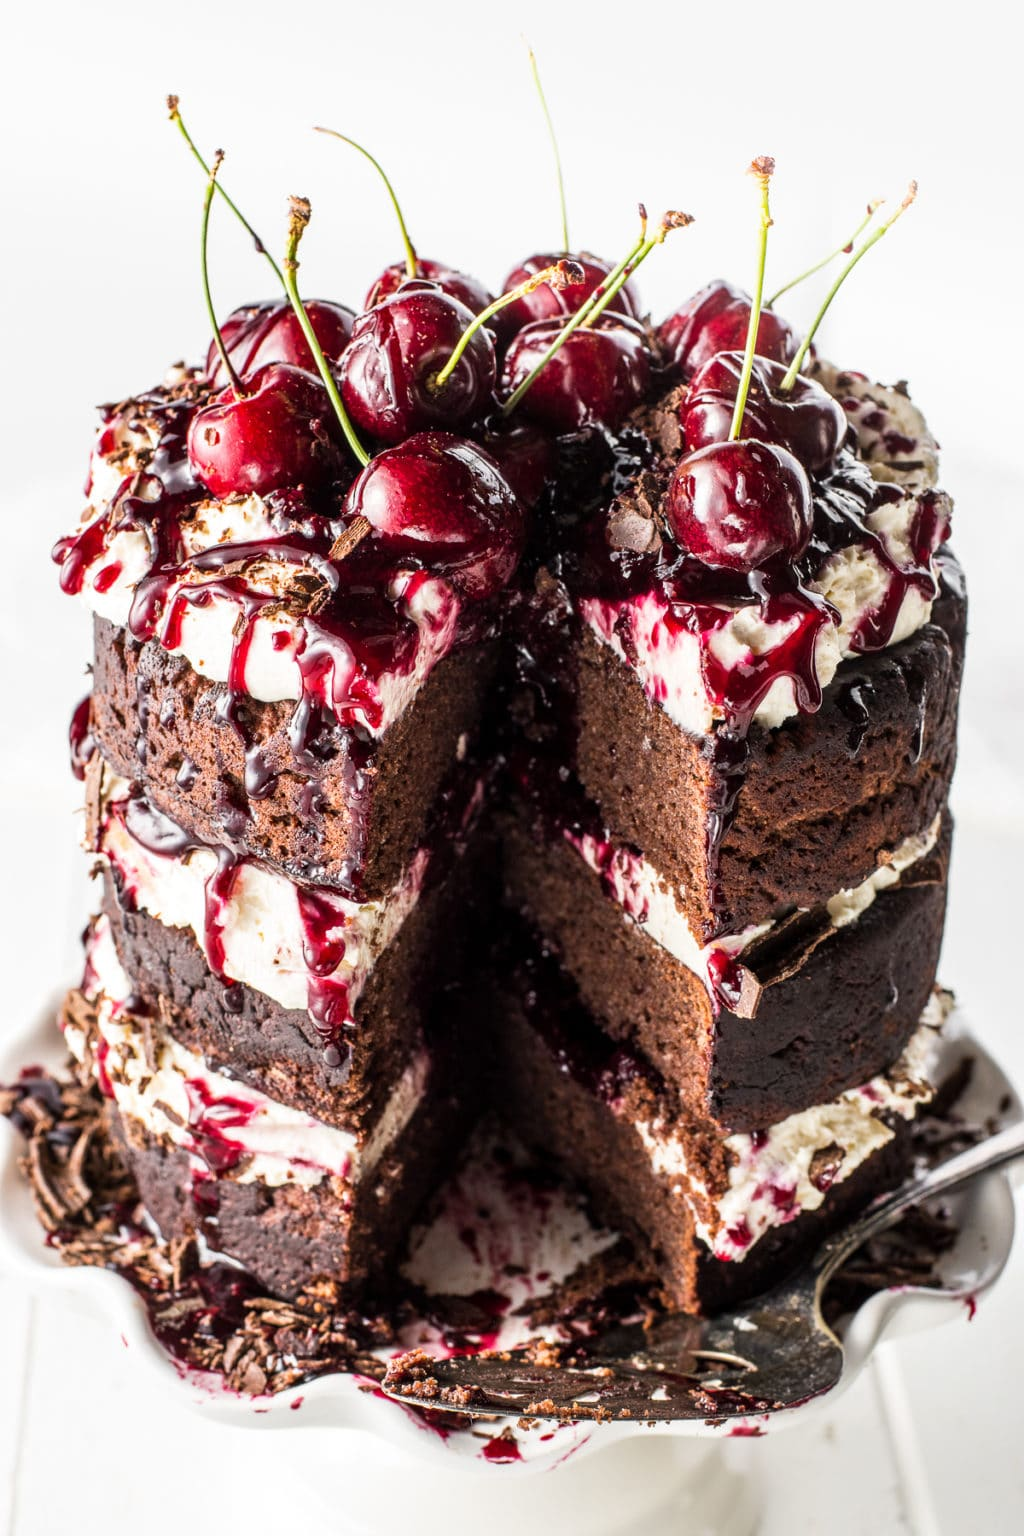 A gluten free black forest cake with a slice removed against a bright white background and wooden table